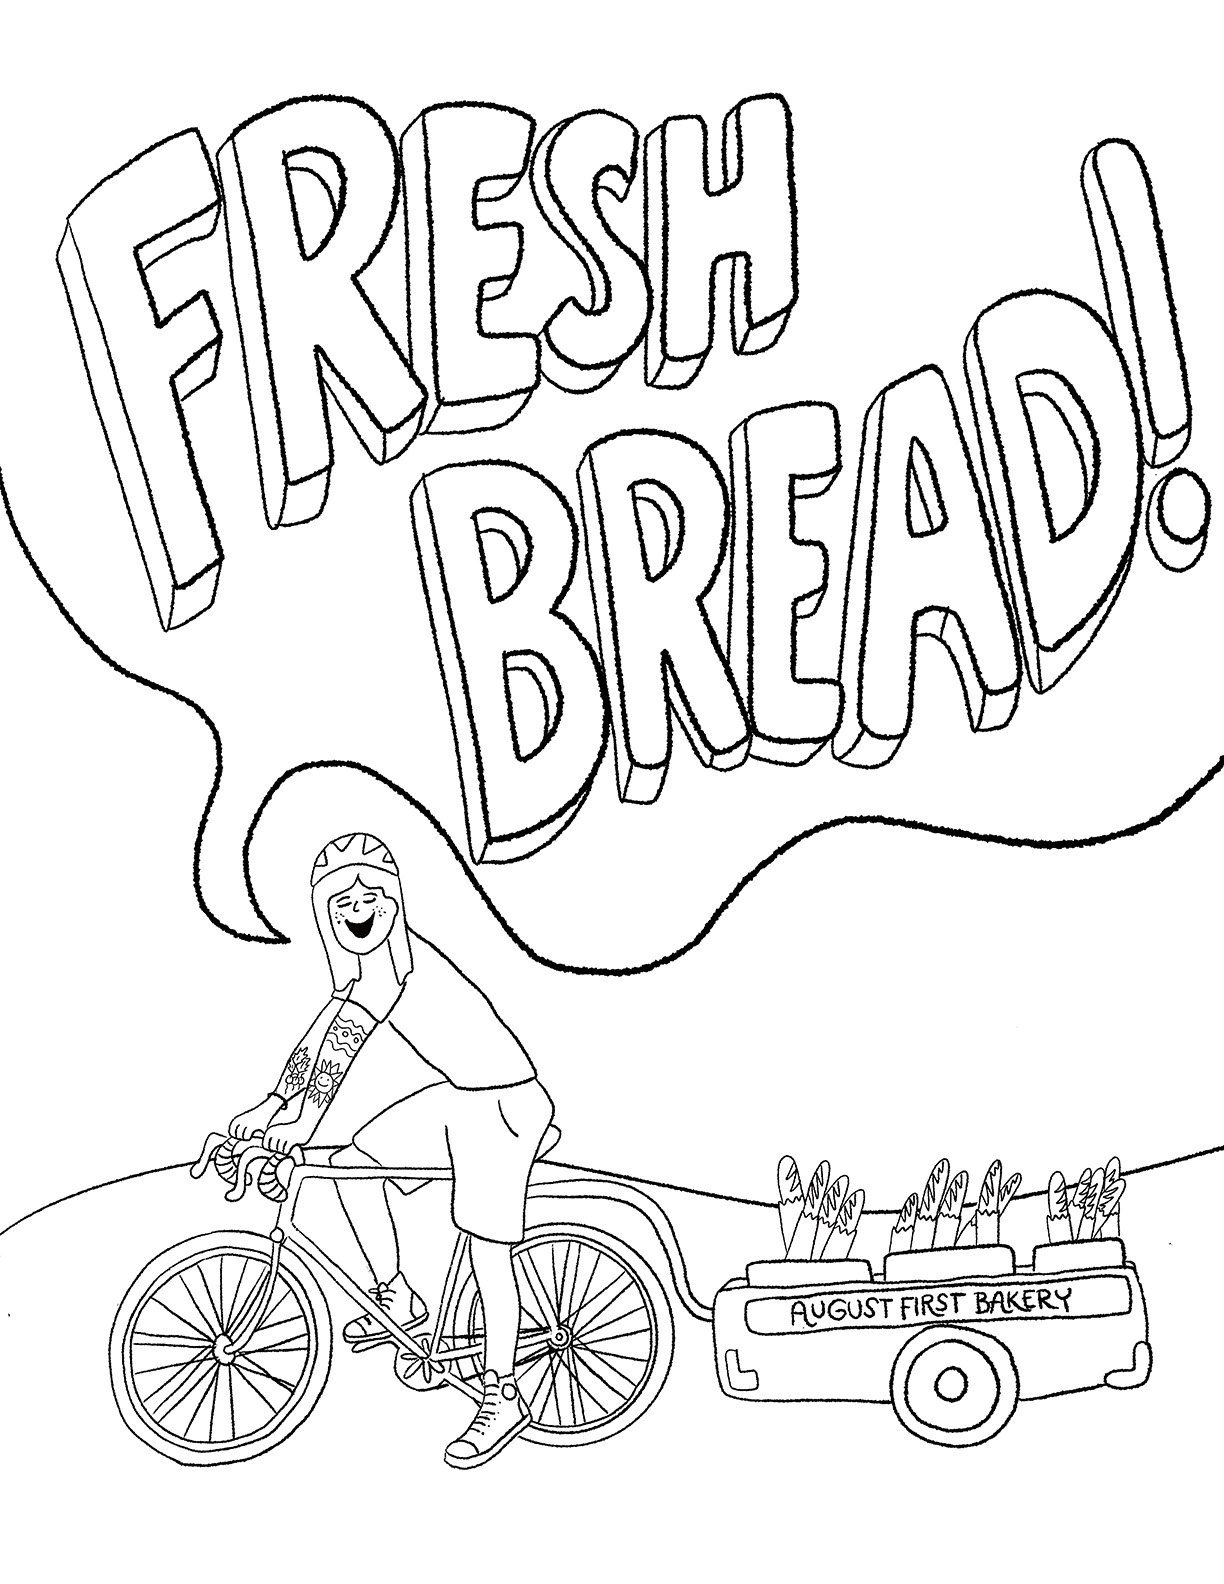 AUGUST FIRST COLORING BOOK: BREAD BIKE